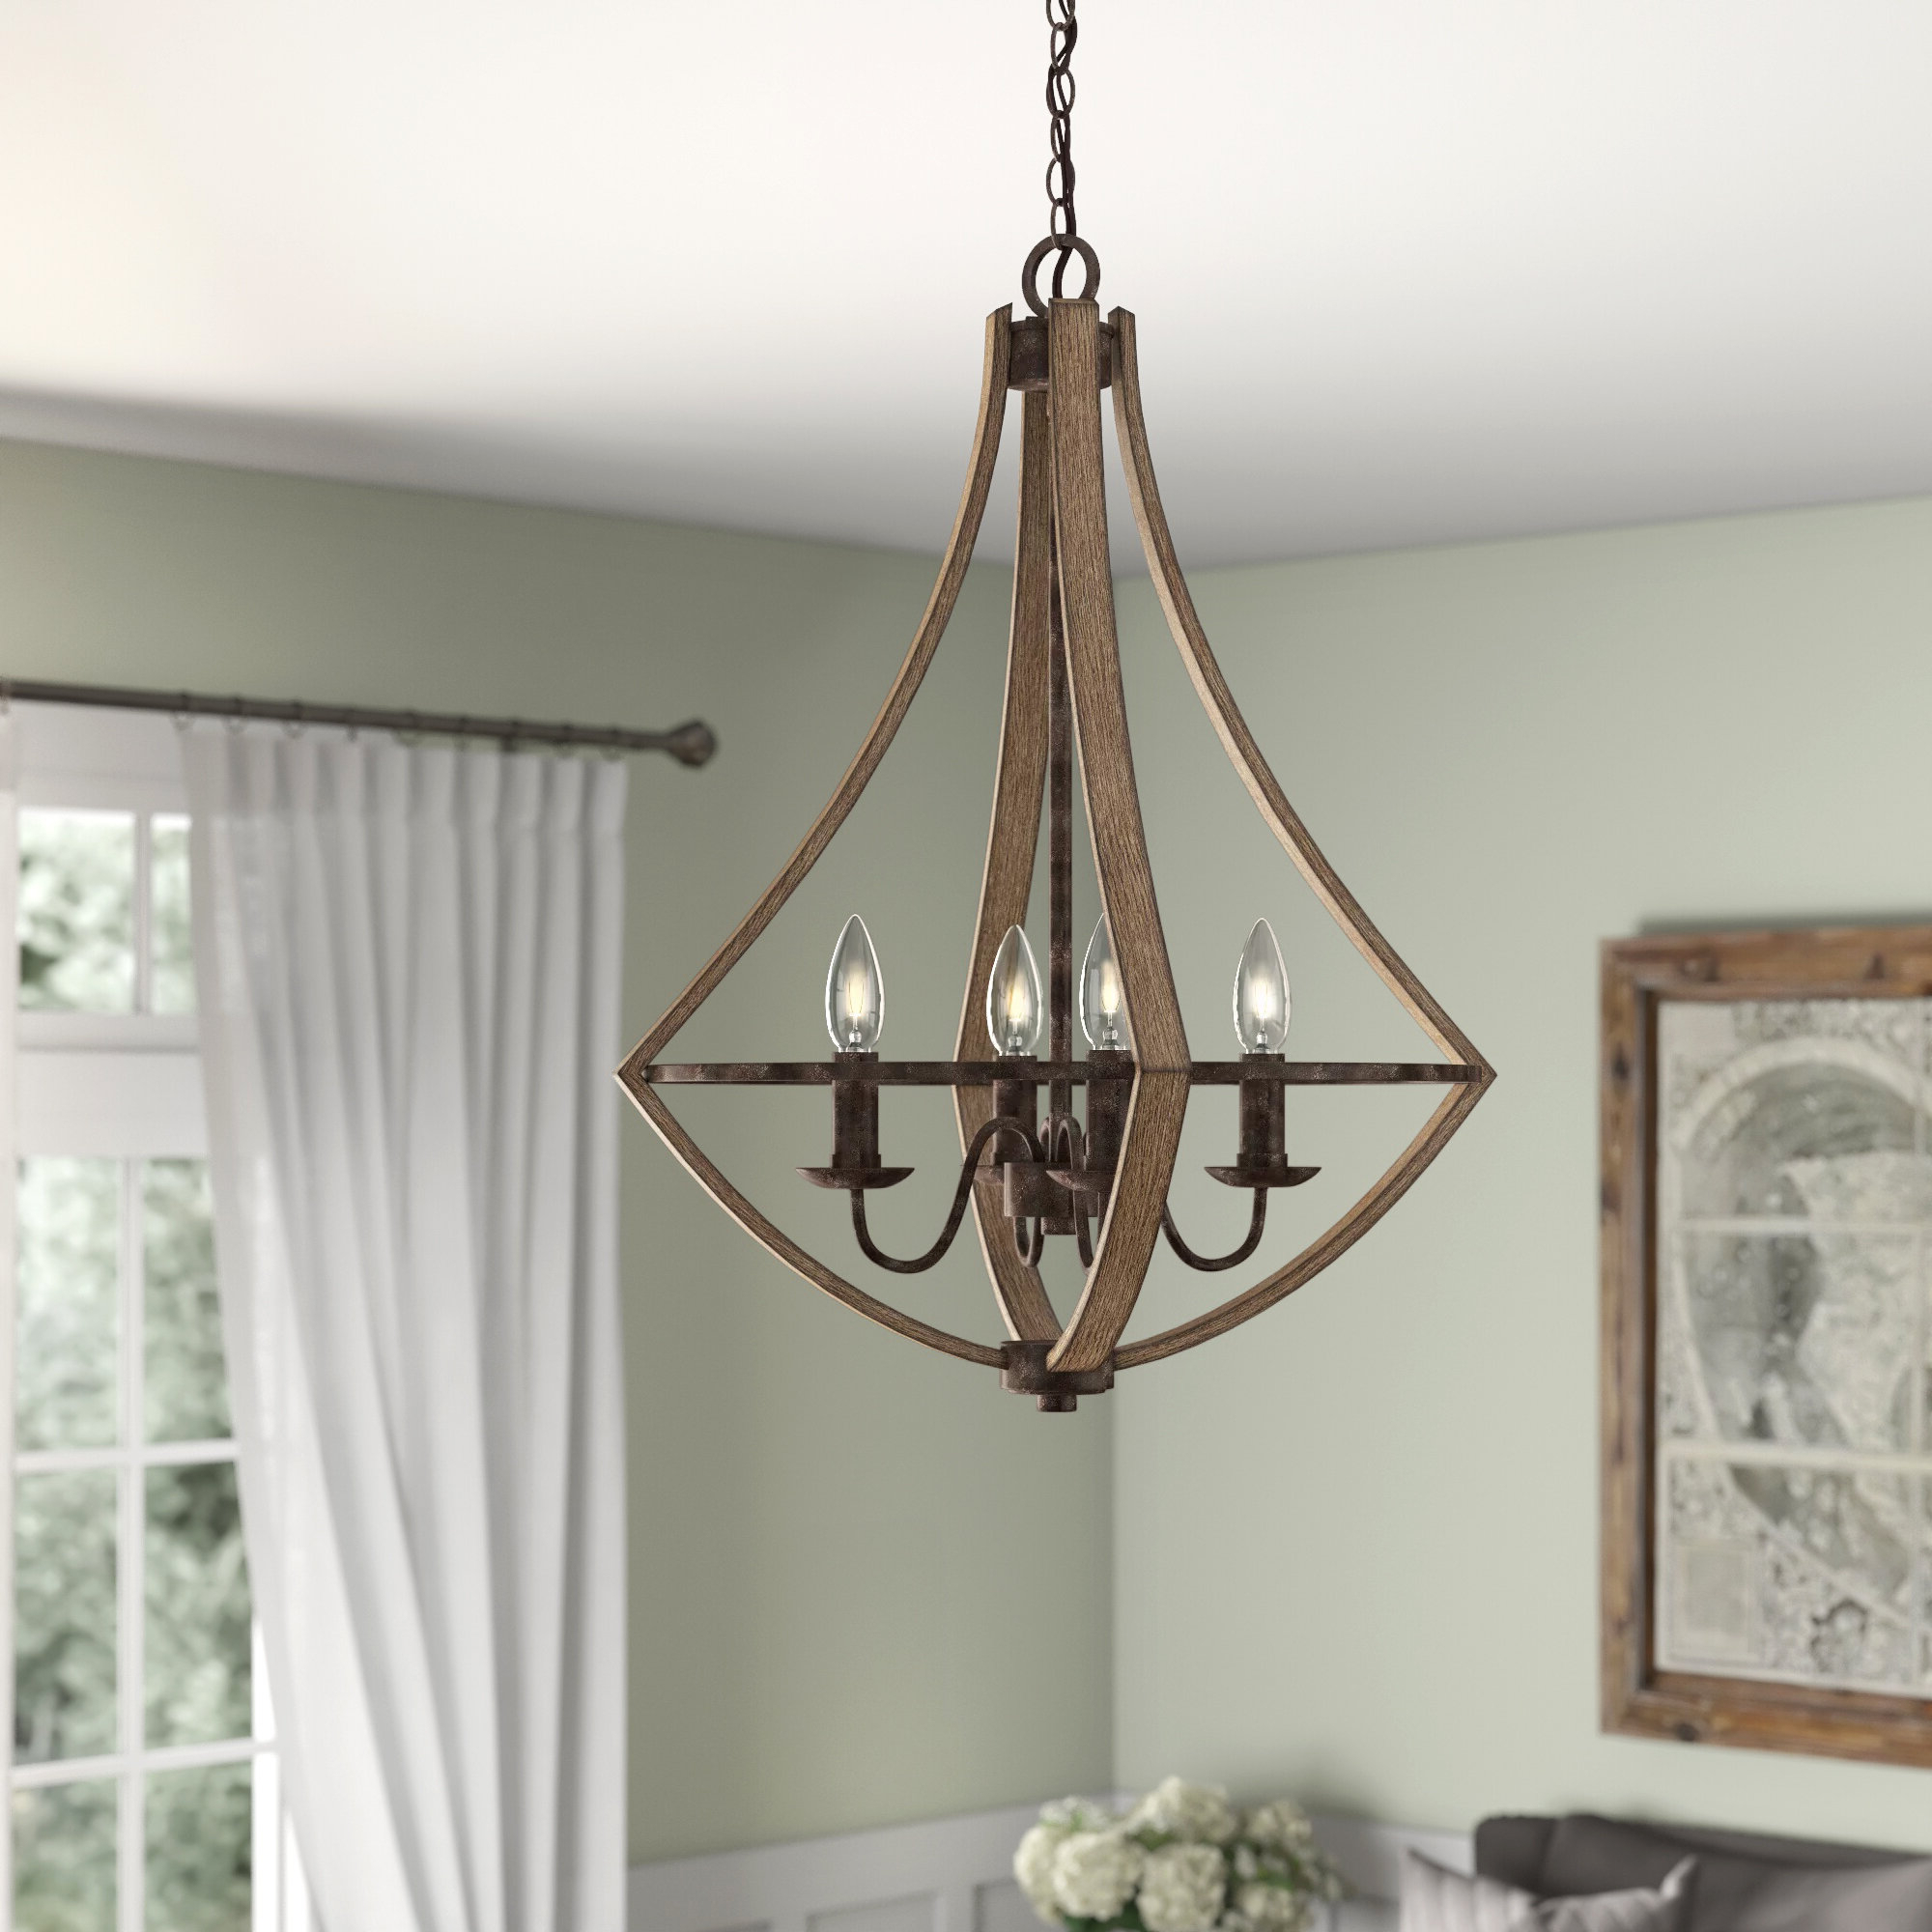 Famous Wadlington 6 Light Single Cylinder Pendants With Regard To Reimers 4 Light Candle Style Chandelier (View 8 of 20)